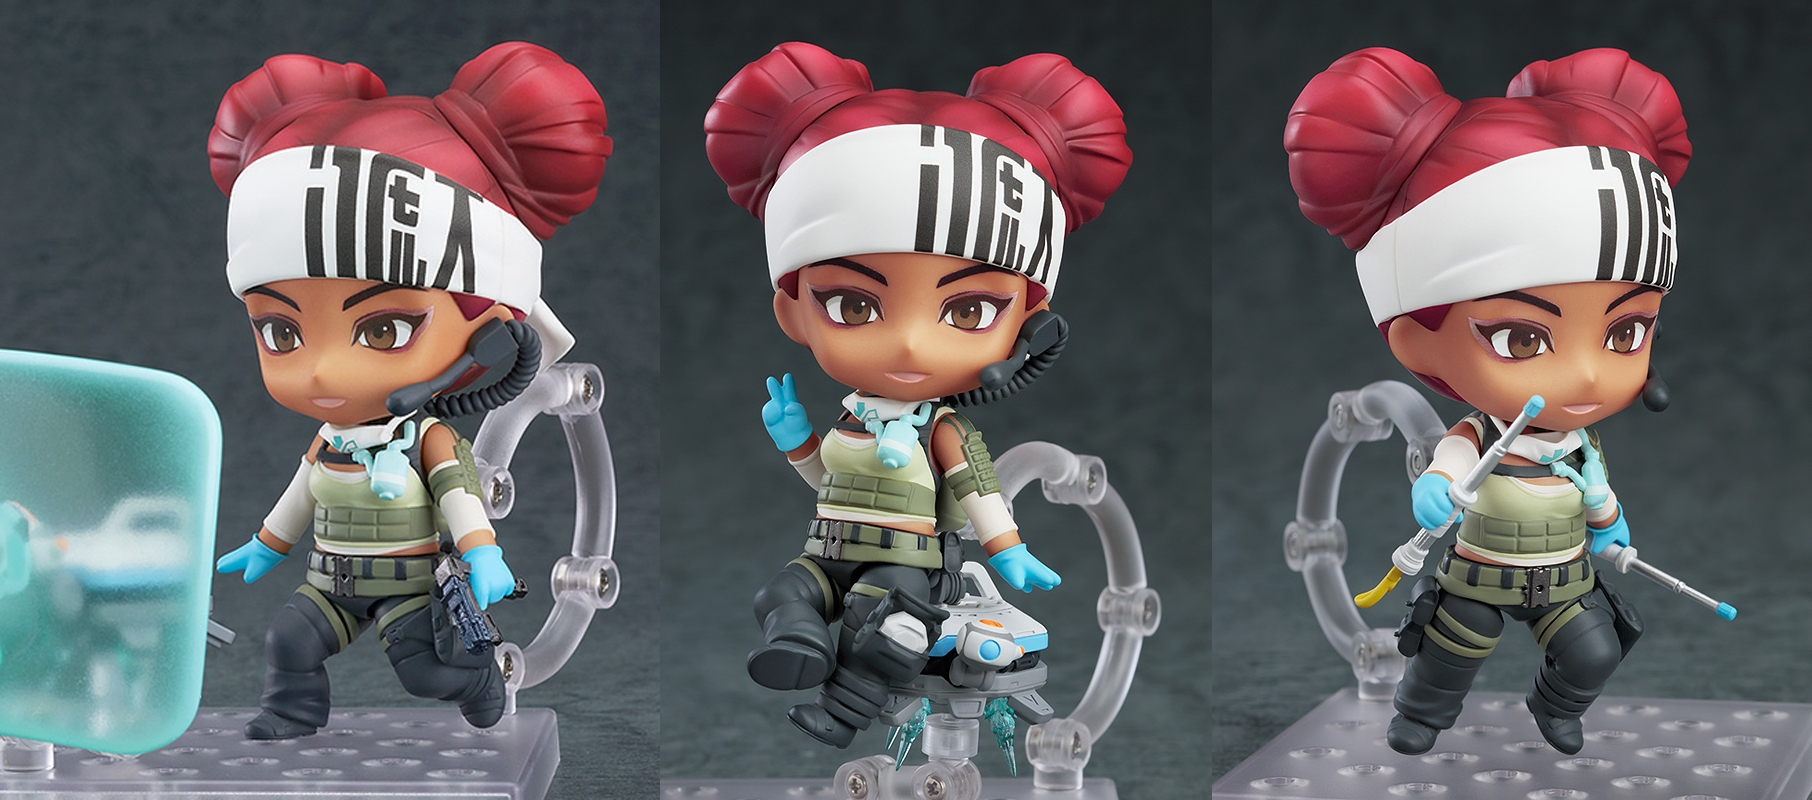 Lifeline From Apex Legends Will Soon Make Her Nendoroid Debut By Good Smile Company